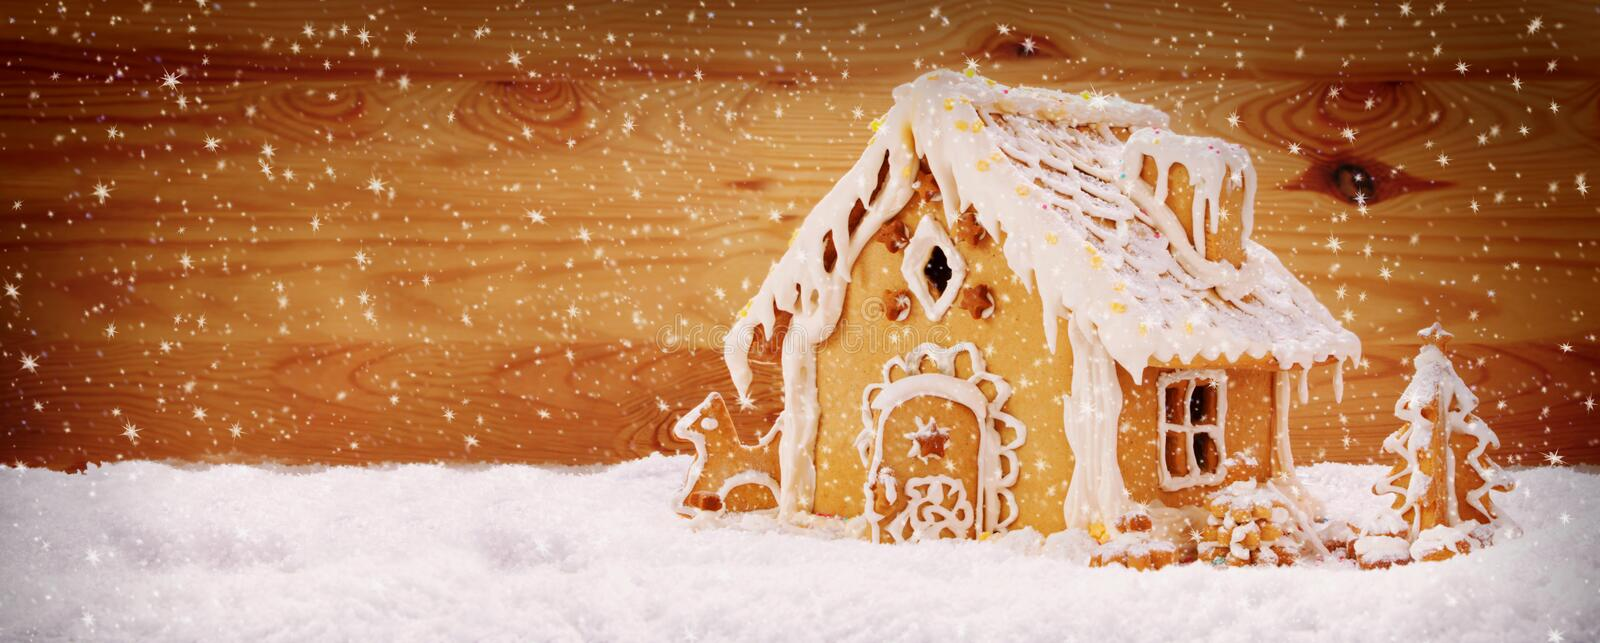 Winter Holiday Gingerbread house . royalty free stock photo